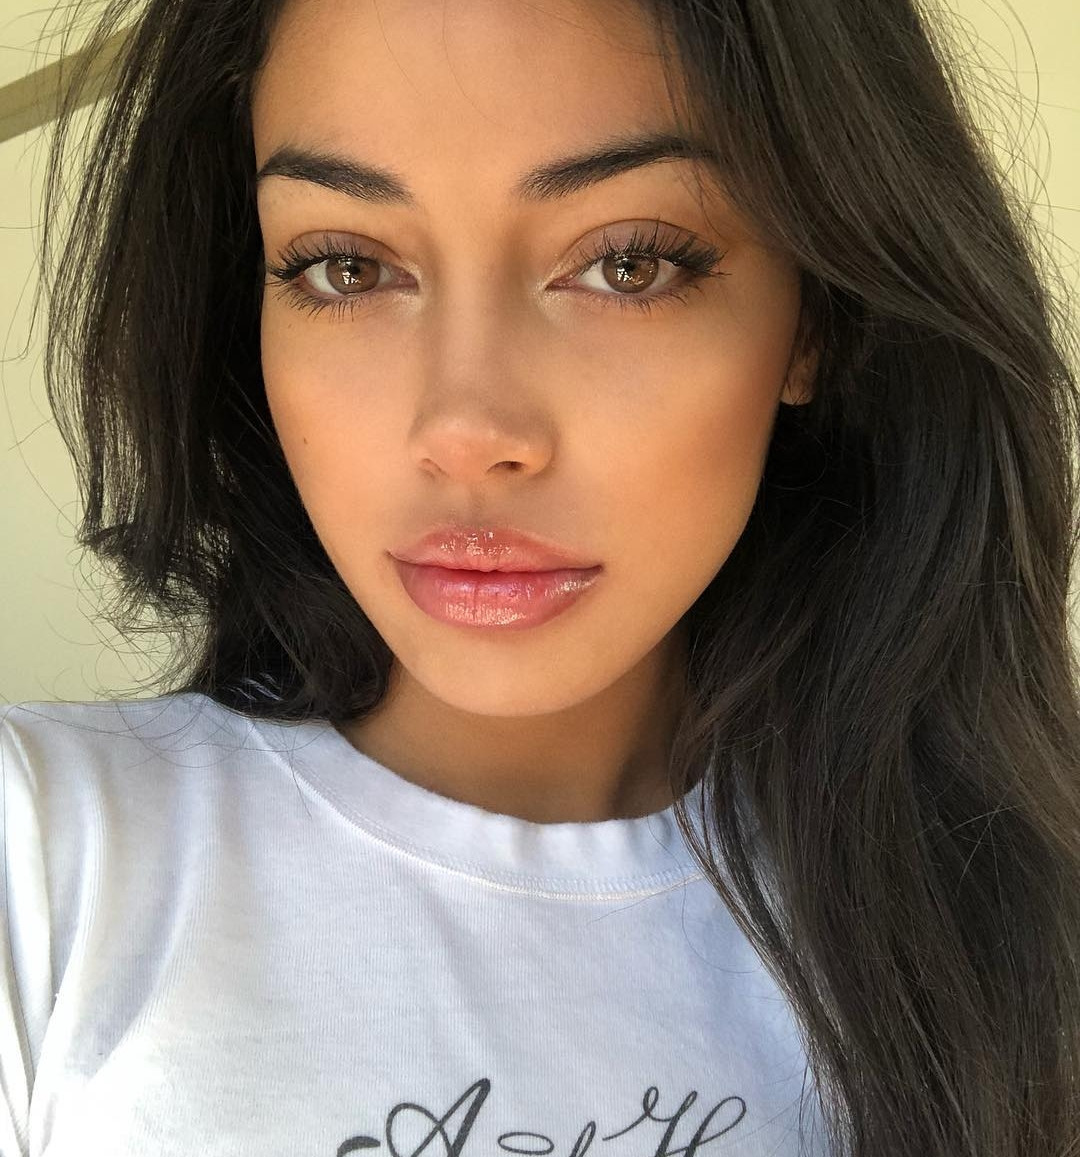 Stunning And Surprising New Looks: Cindy Kimberly Looks Beautiful In Stunning New Instagram